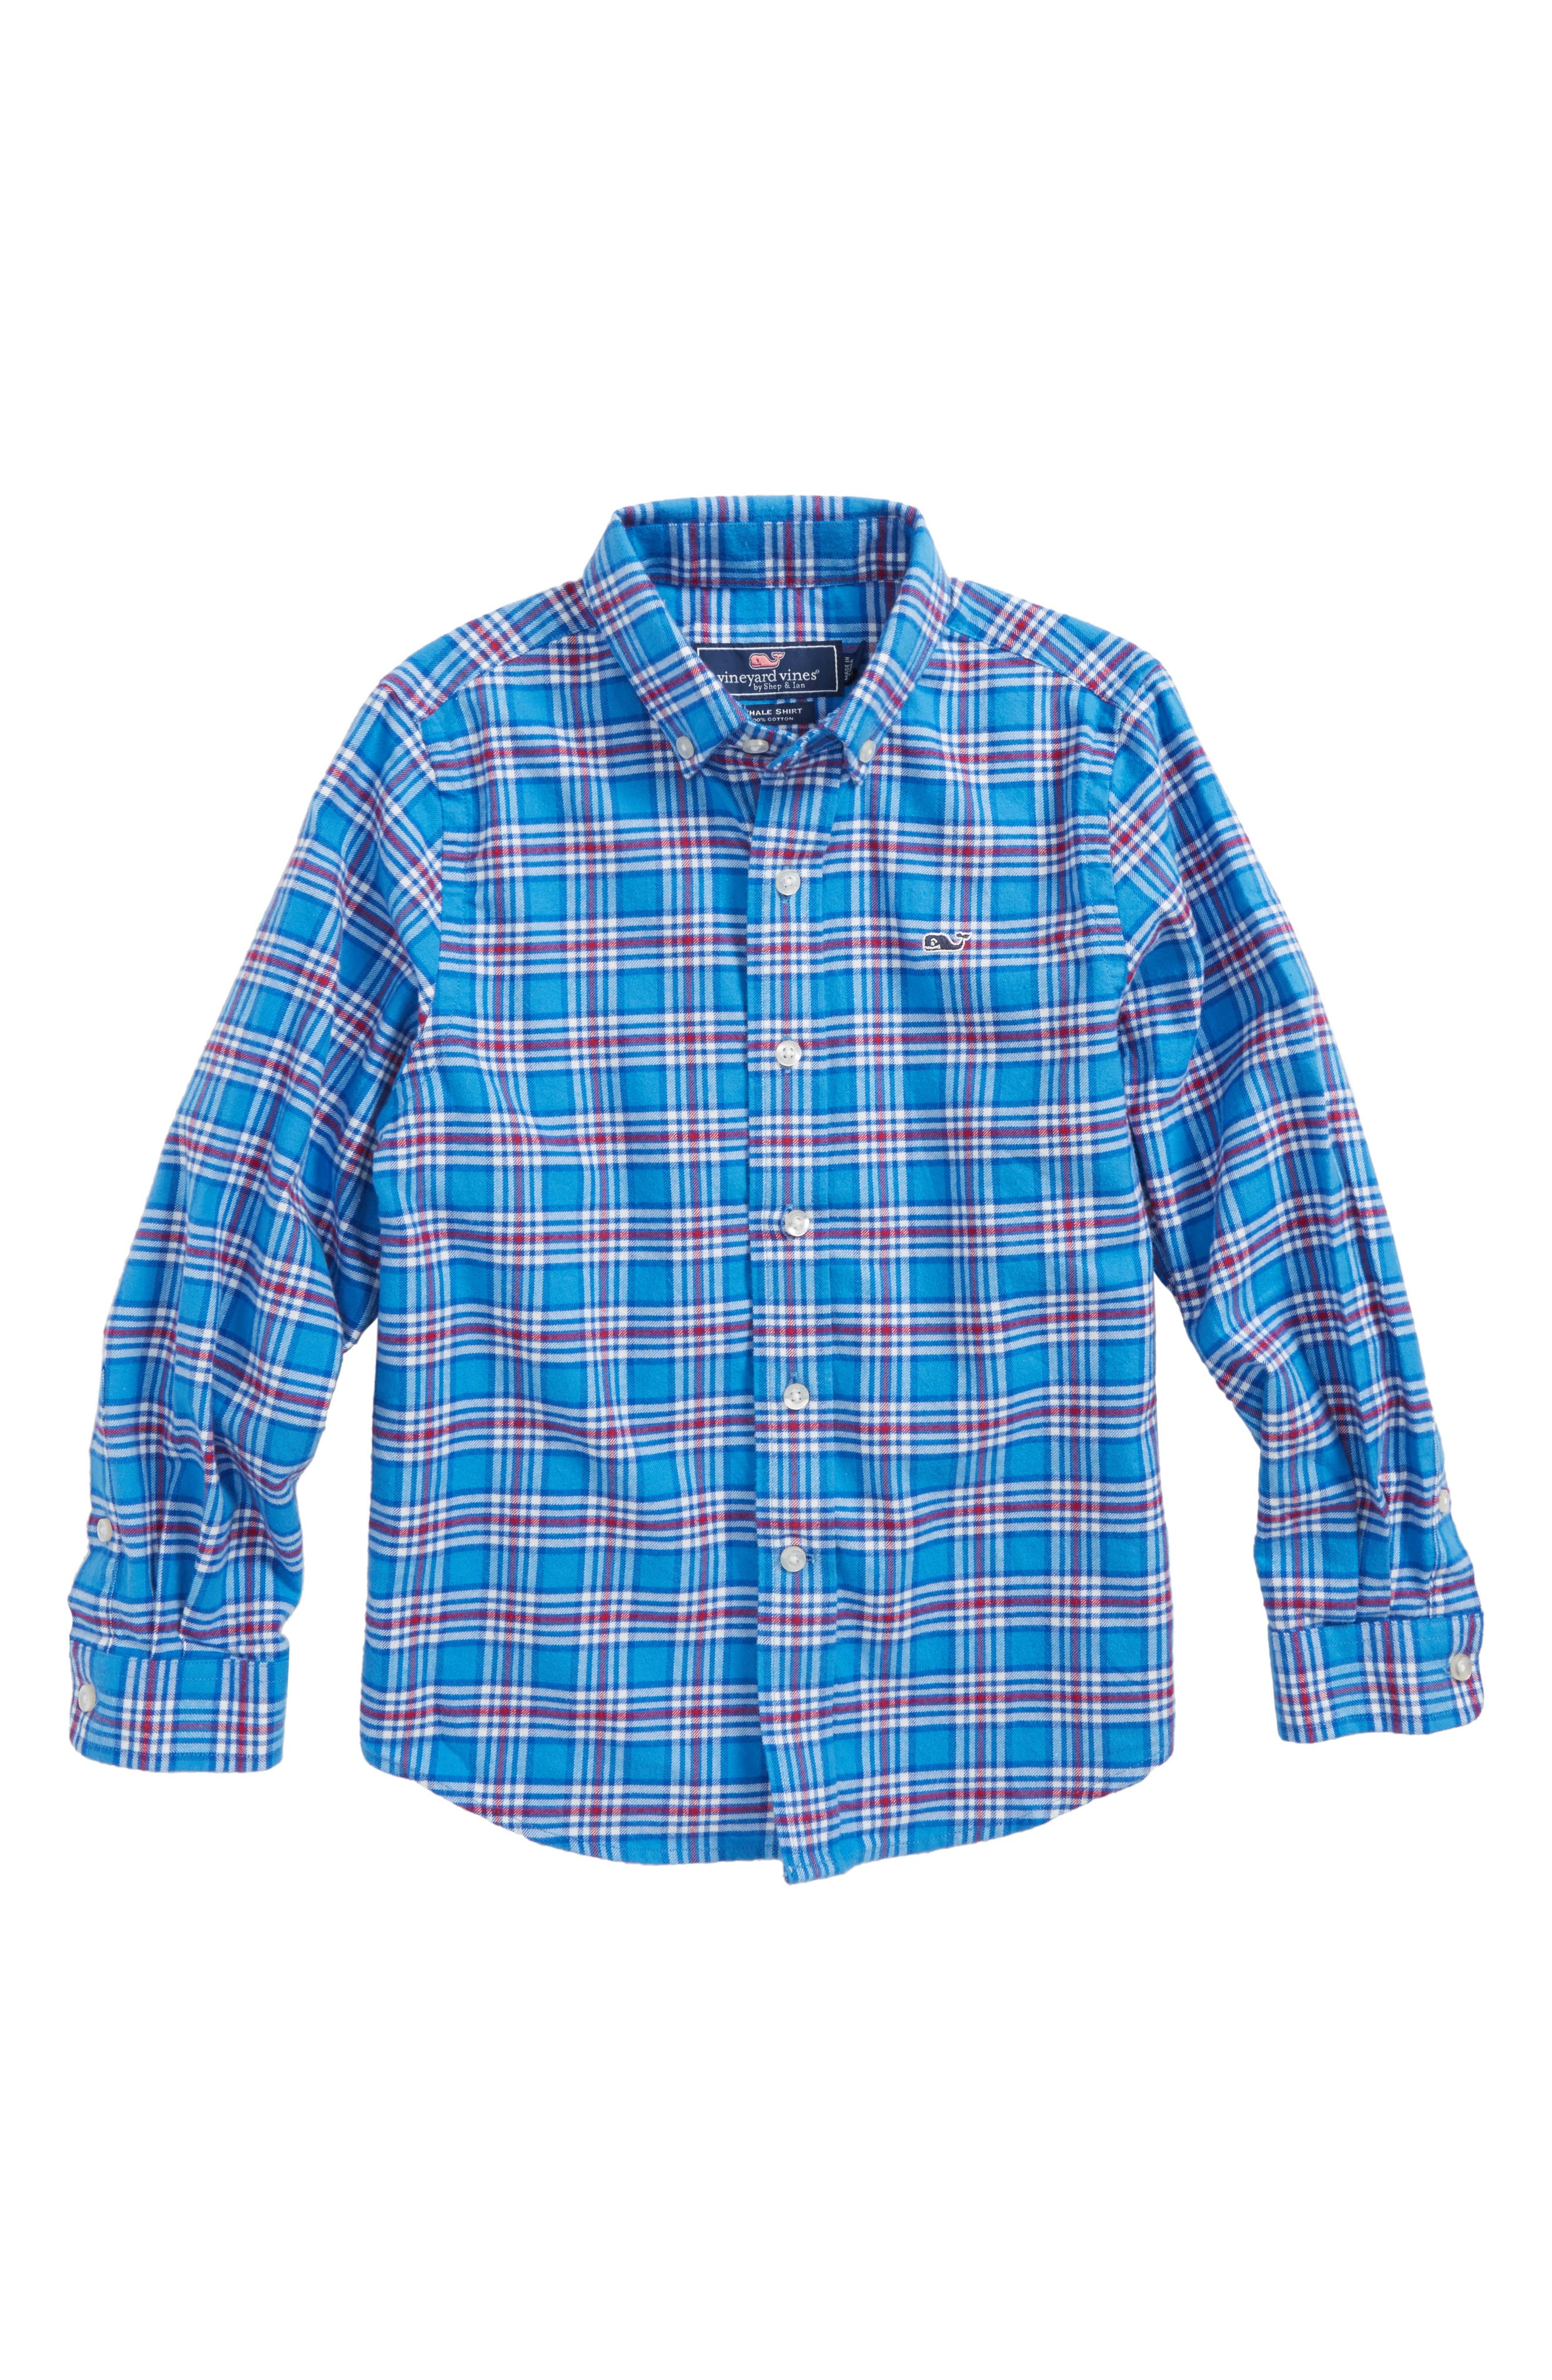 Chandler Pond Plaid Flannel Shirt,                         Main,                         color, Hull Blue